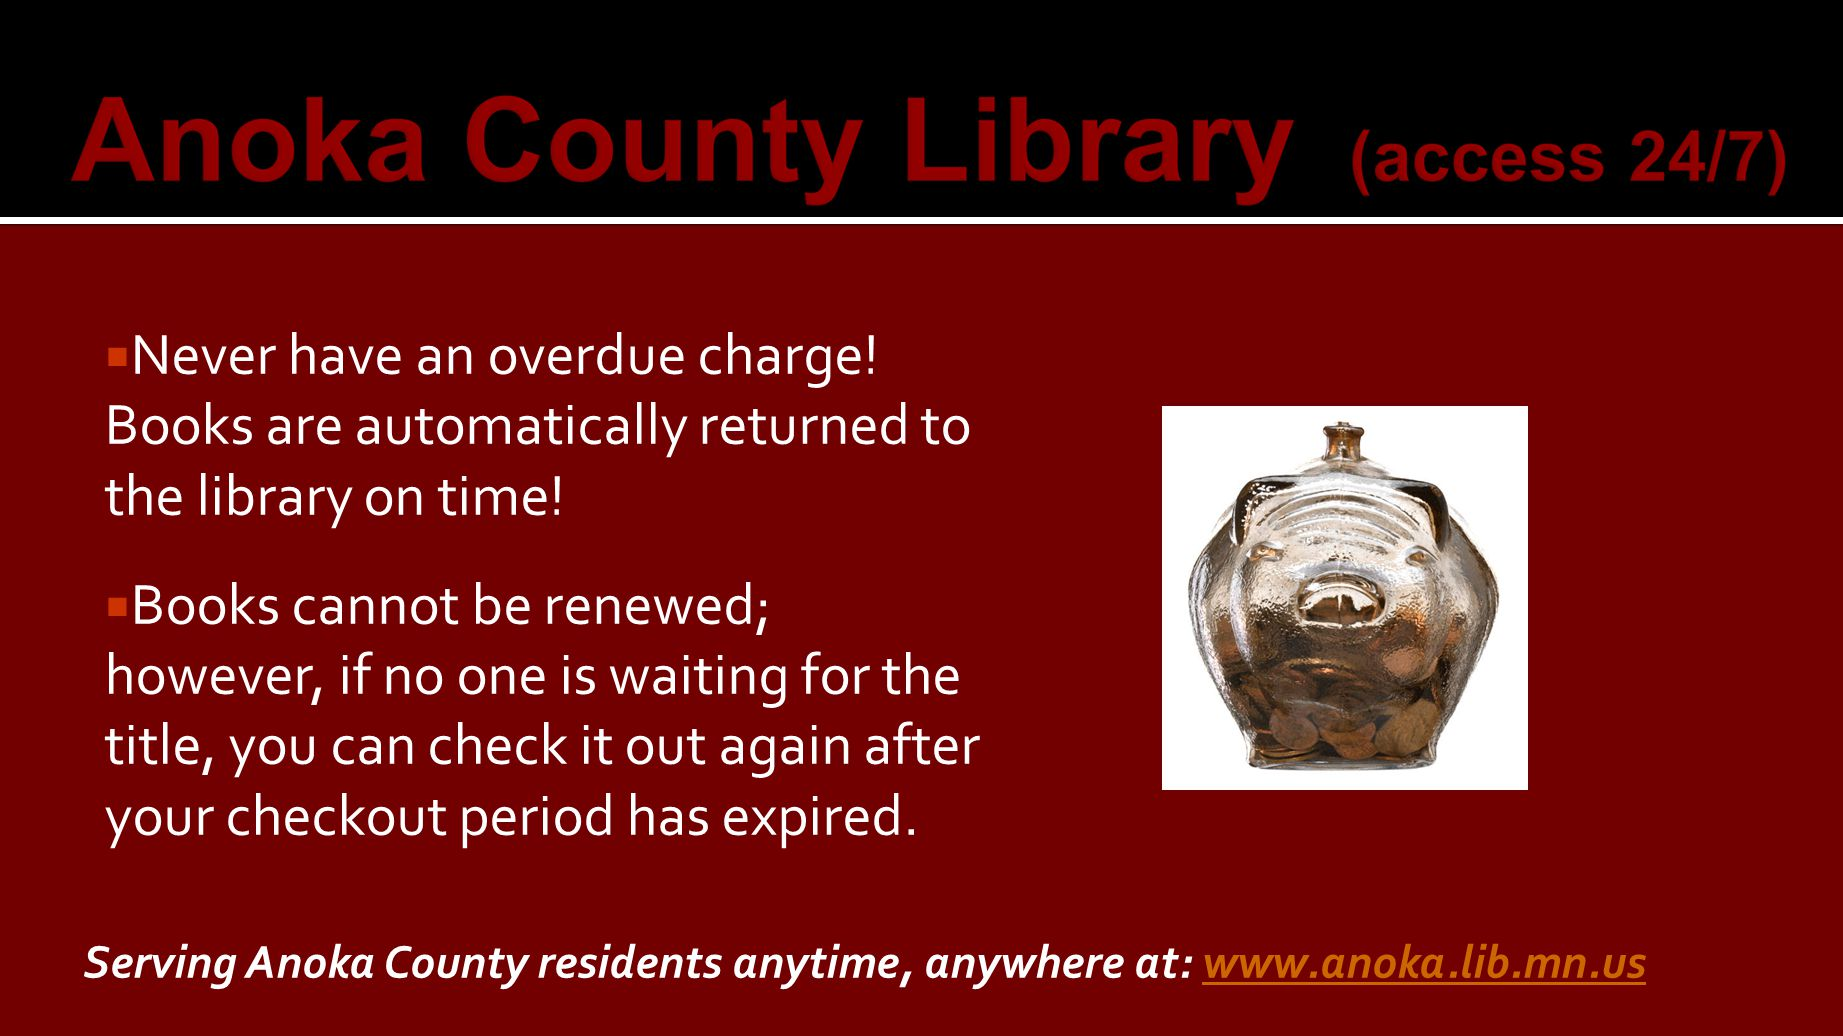  Never have an overdue charge. Books are automatically returned to the library on time.